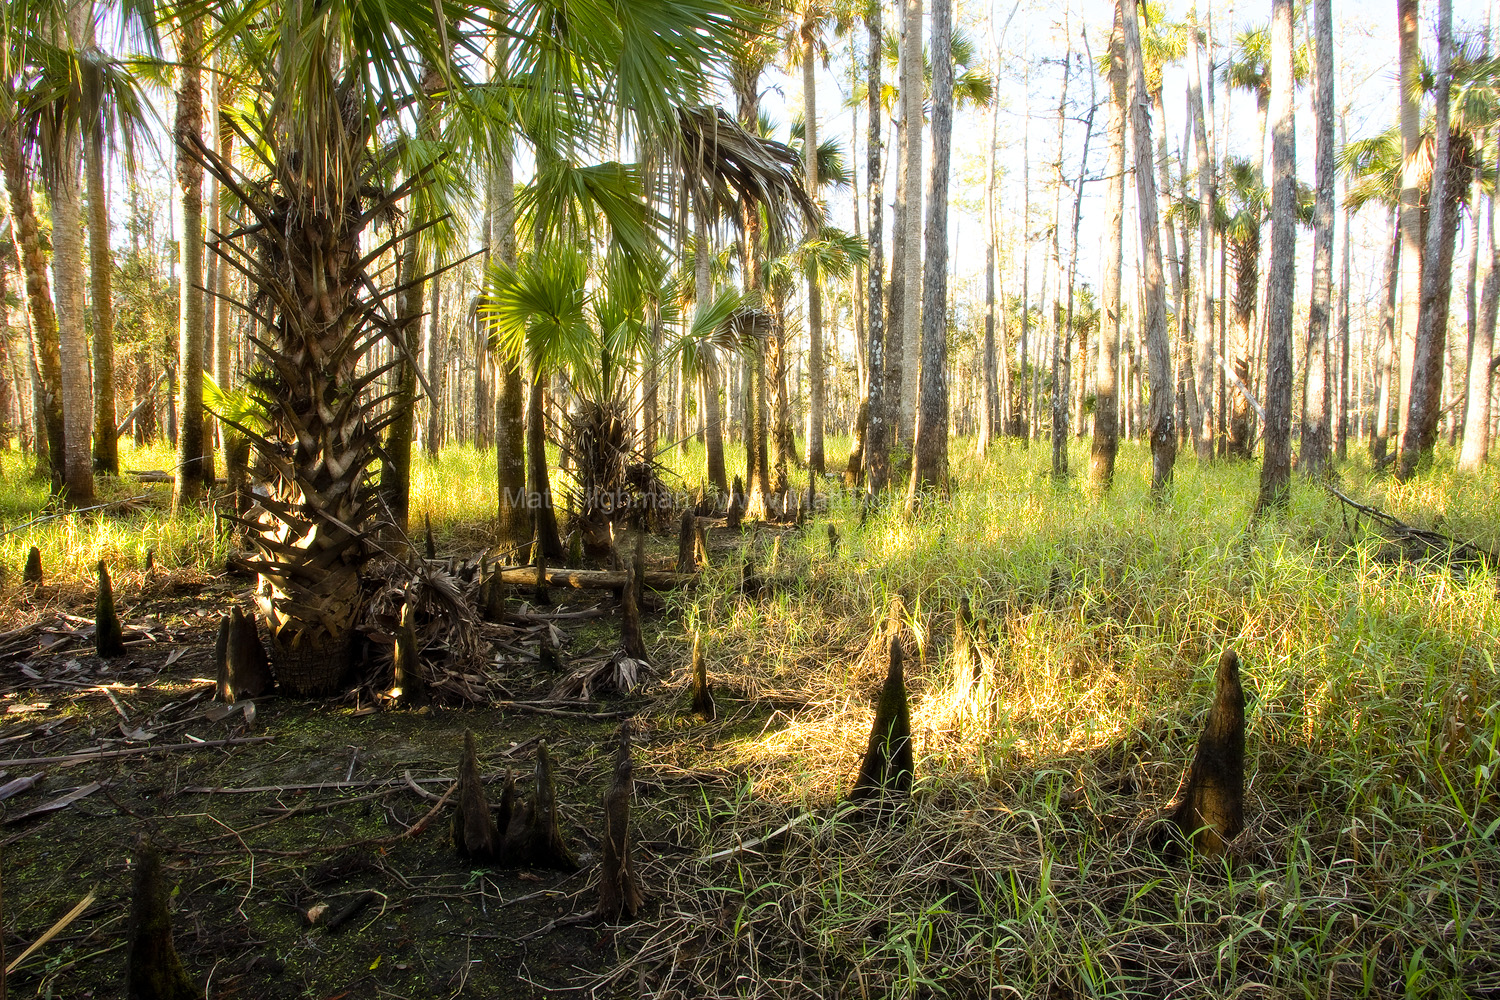 Fine art stock photograph of Florida forest by Fisheating Creek, near Lake Okeechobee. The morning sunlight turns the dew grass a brilliant gold.